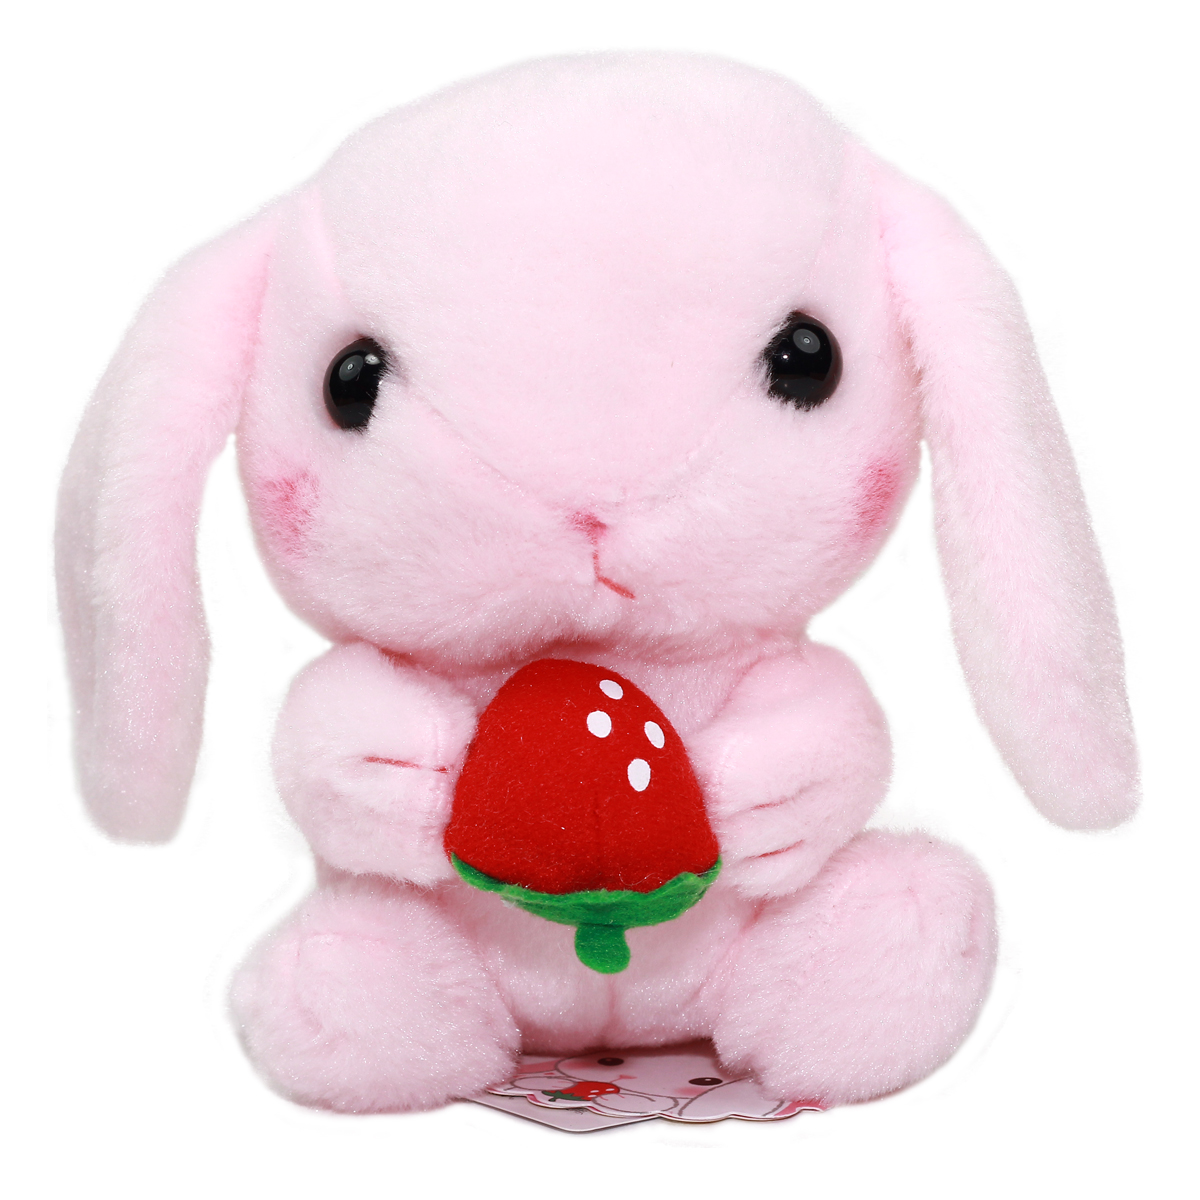 Amuse Bunny Plush Doll Sweet Garden Collection Cute Stuffed Animal Toy Pink 6 Inches